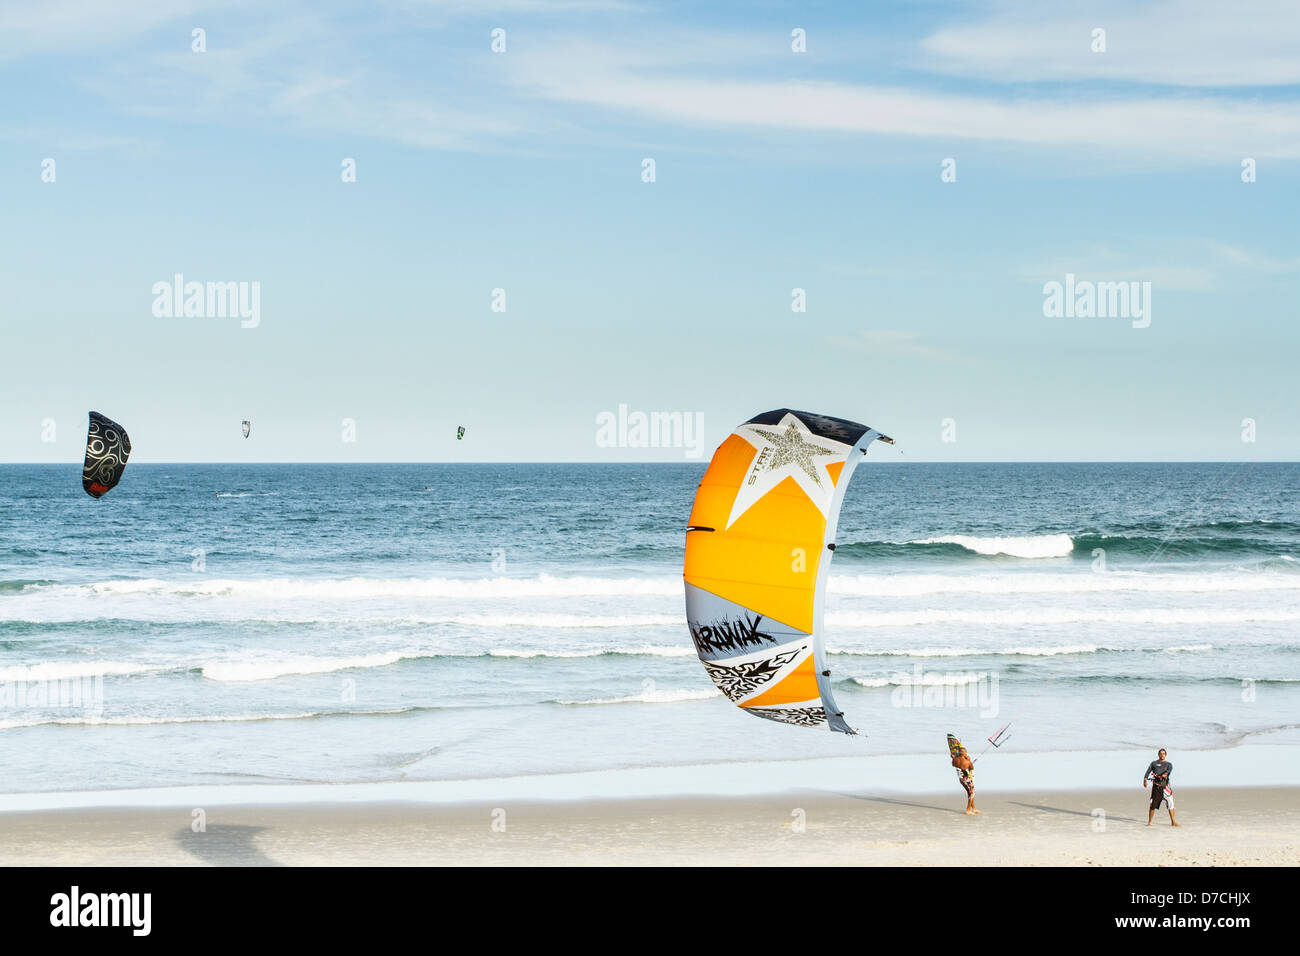 Kitesurfers at Campeche Beach. - Stock Image